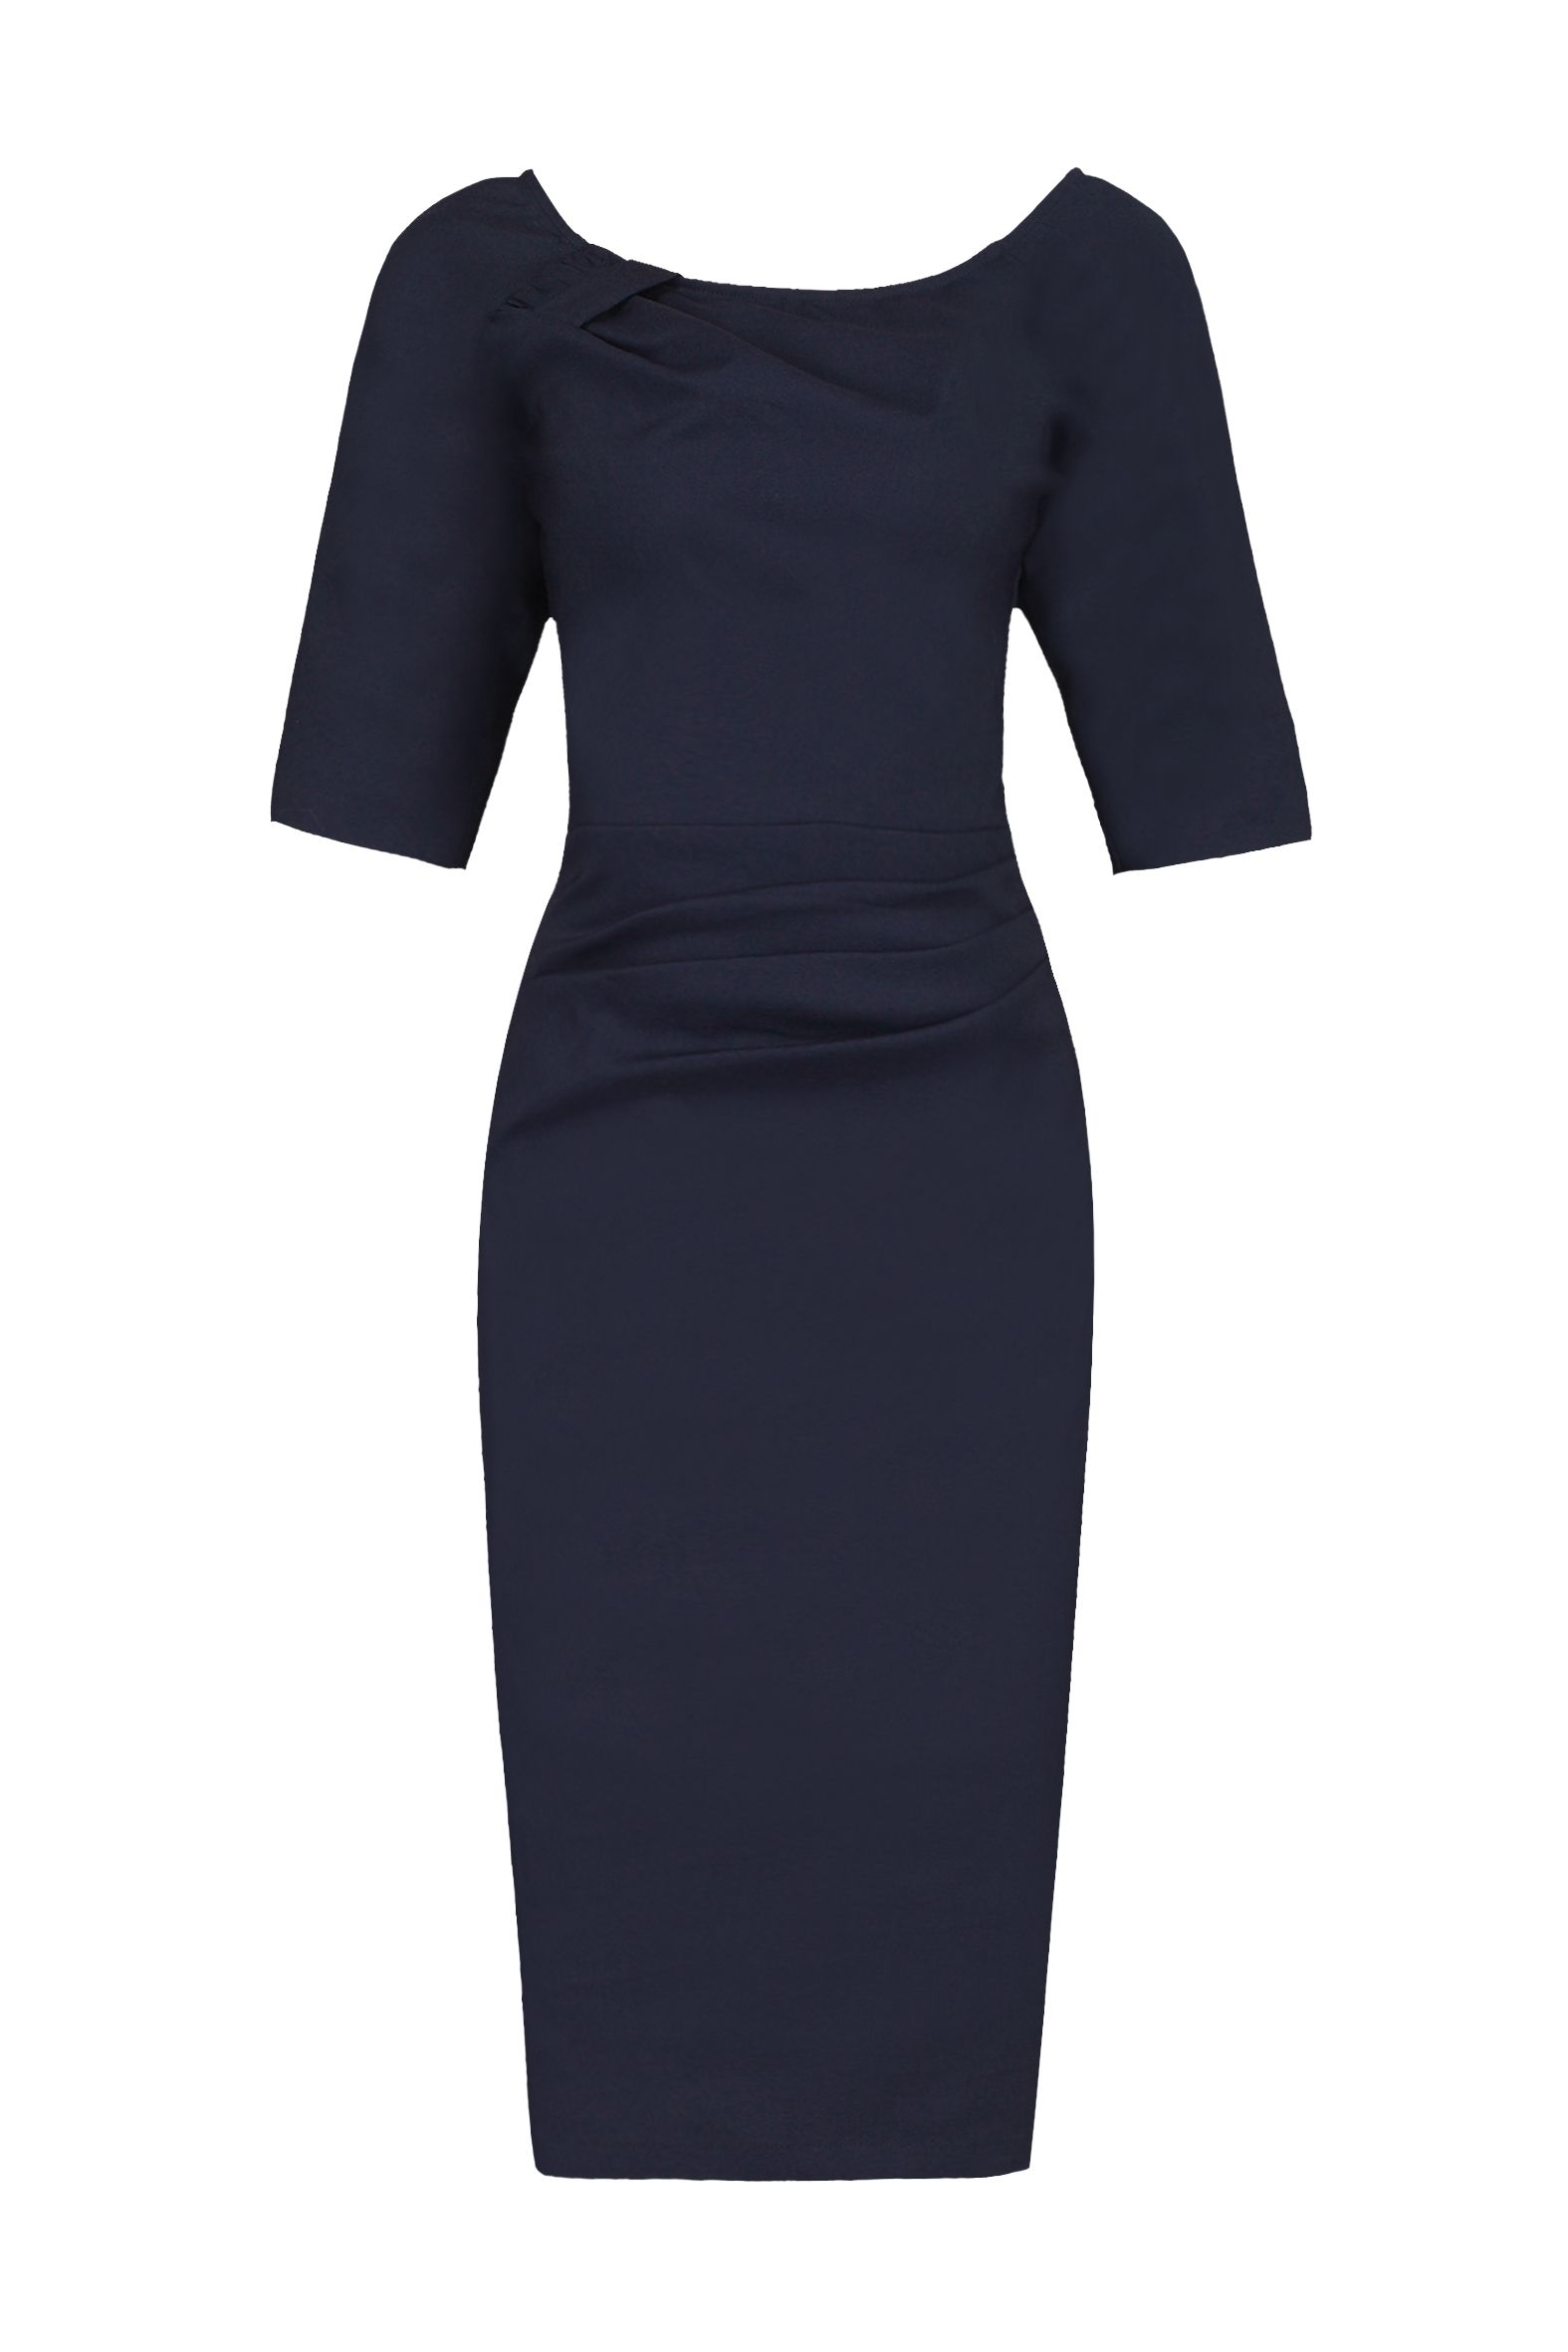 Jolie Moi 1/2 Sleeve Ruched Wiggle Dress, Blue